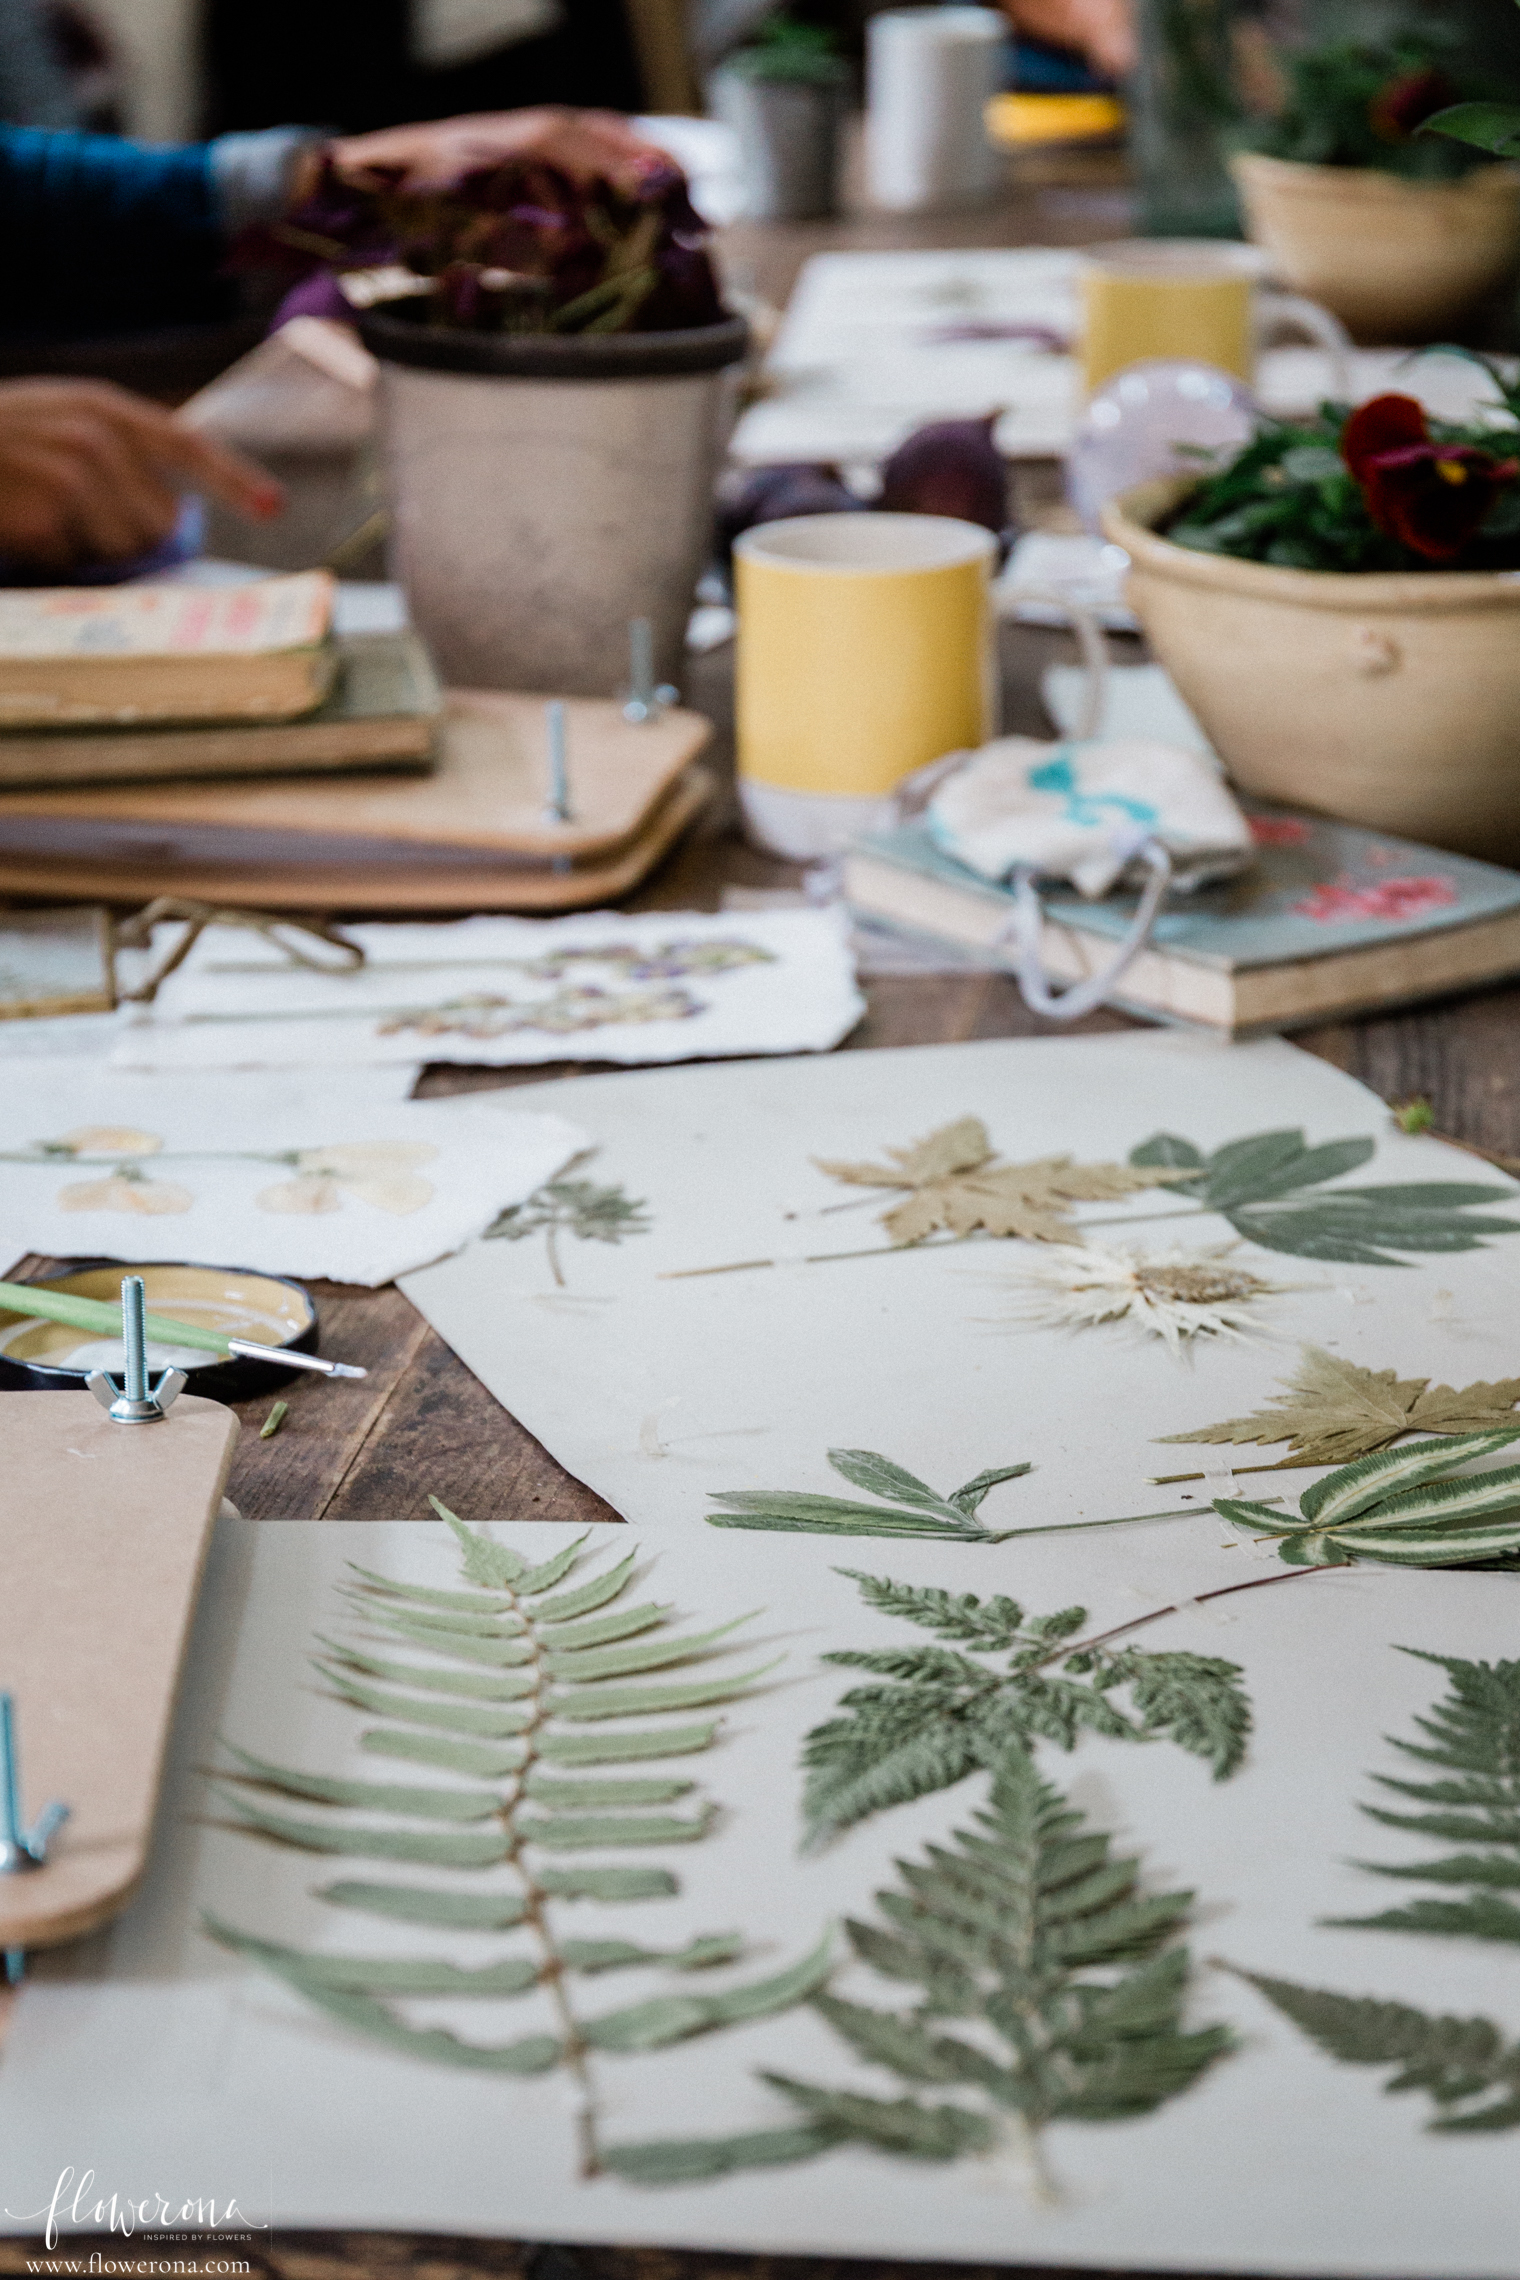 Flower Pressing & Cyanotype Print Workshop with JamJar Edit